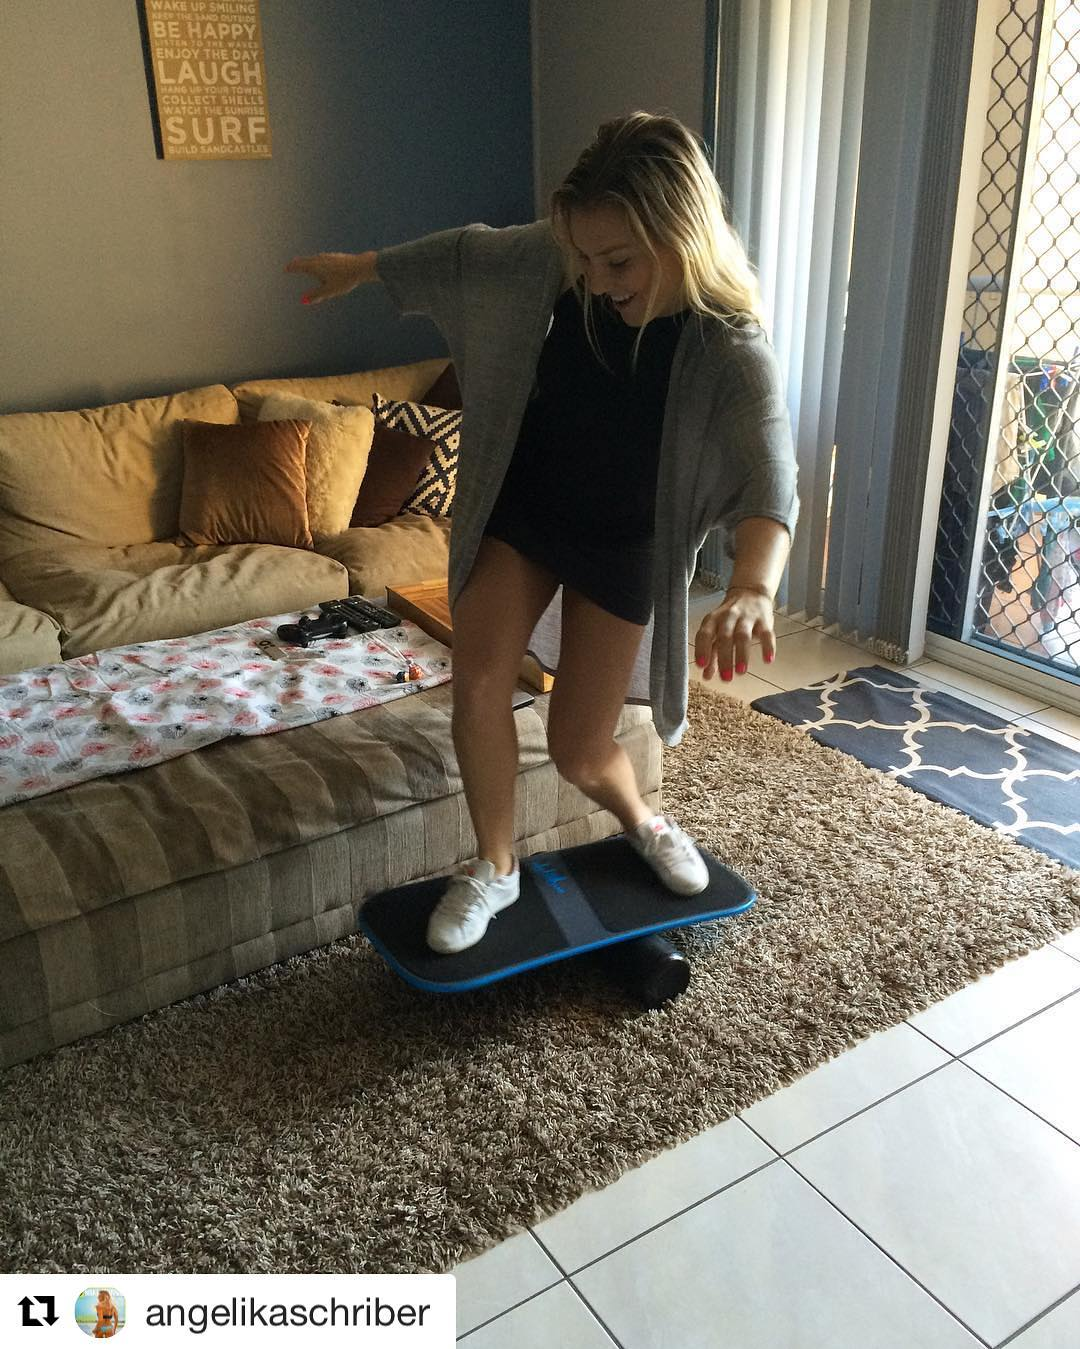 Pro wakeboarder @angelikaschriber working on her balance with her Revolution FIT! Go follow her >> @angelikaschriber